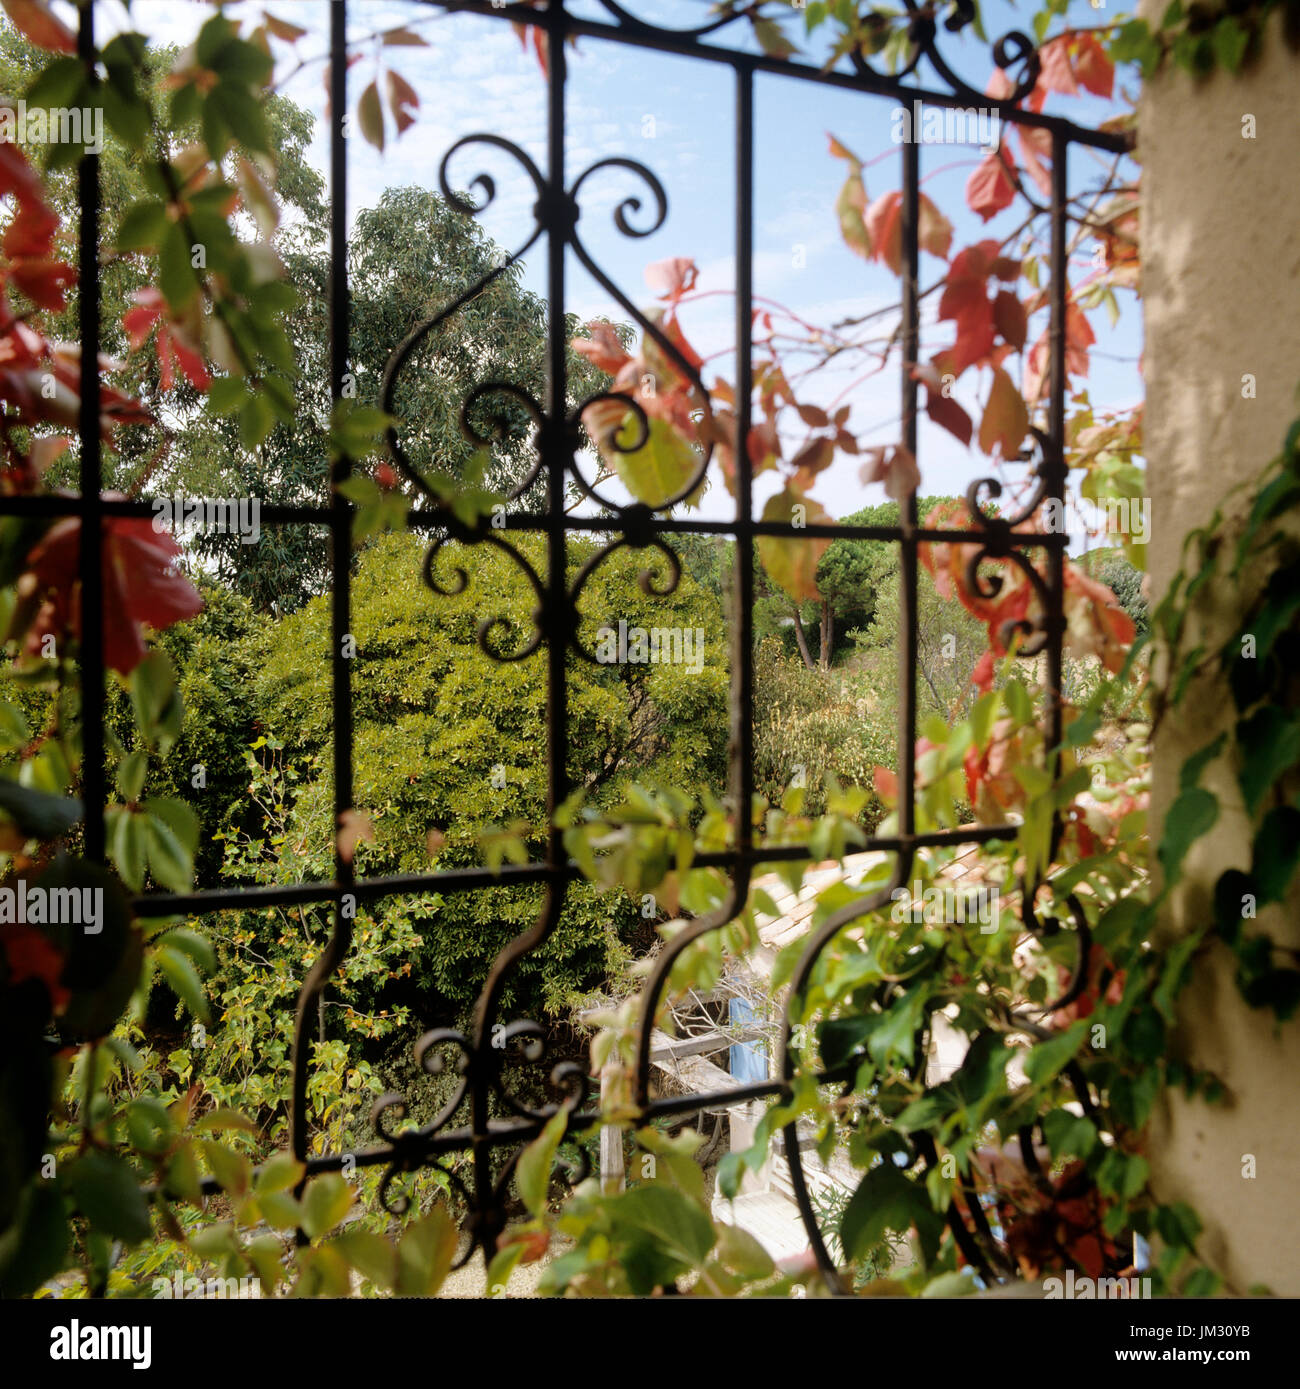 Vines growing on gate - Stock Image